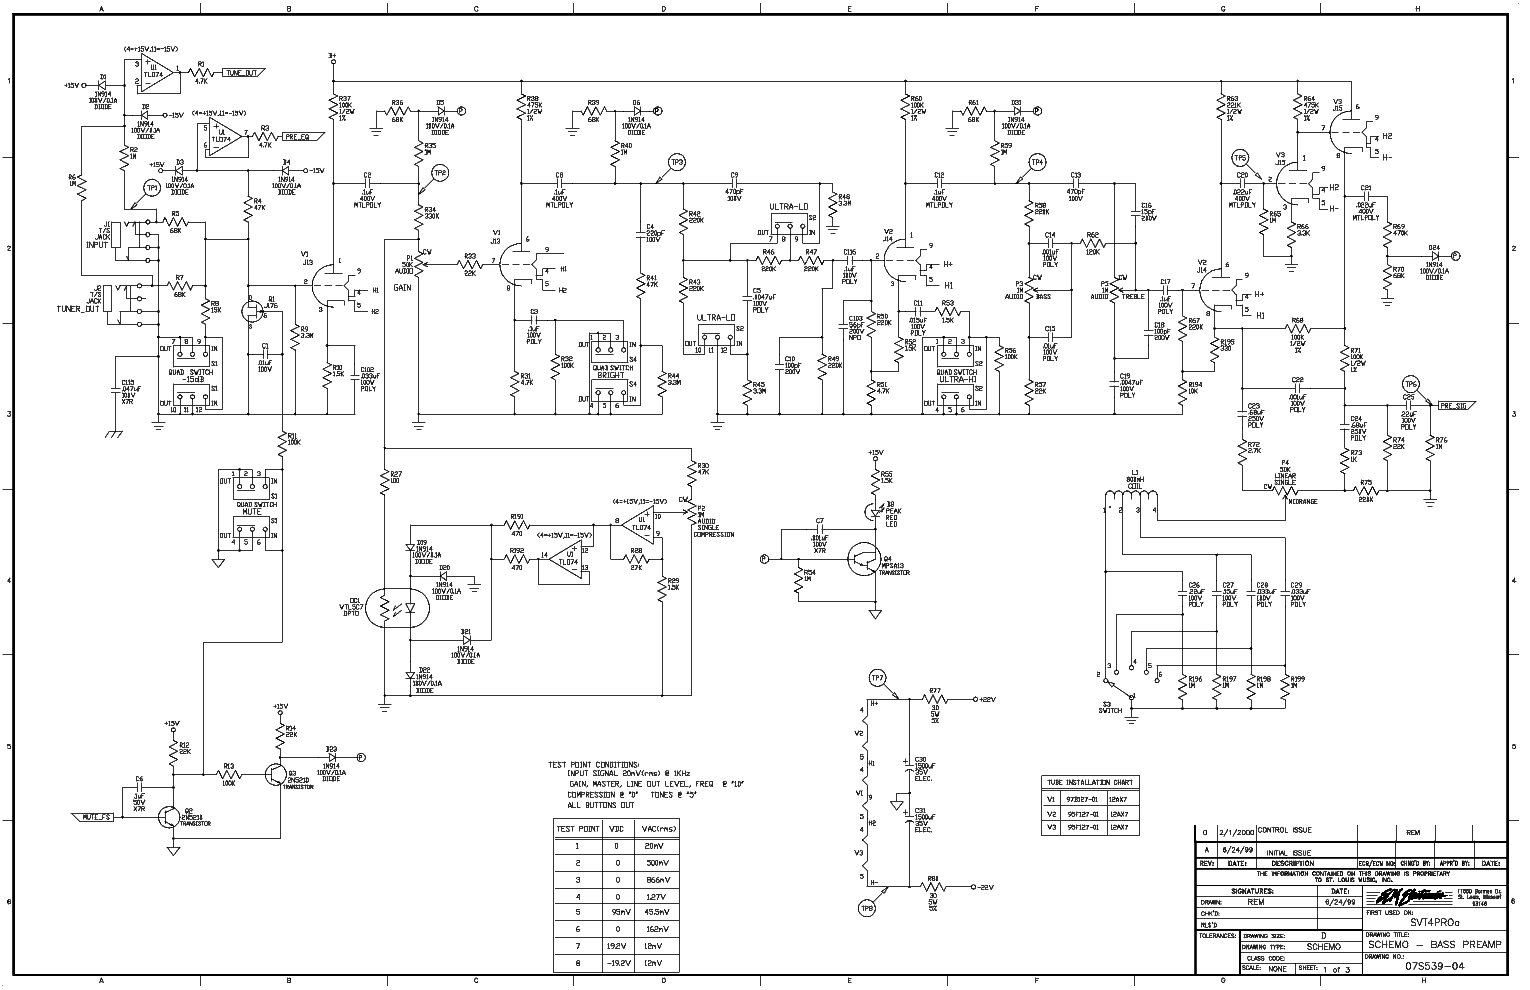 scm electronics svt3pro sch service manual download  schematics  eeprom  repair info for